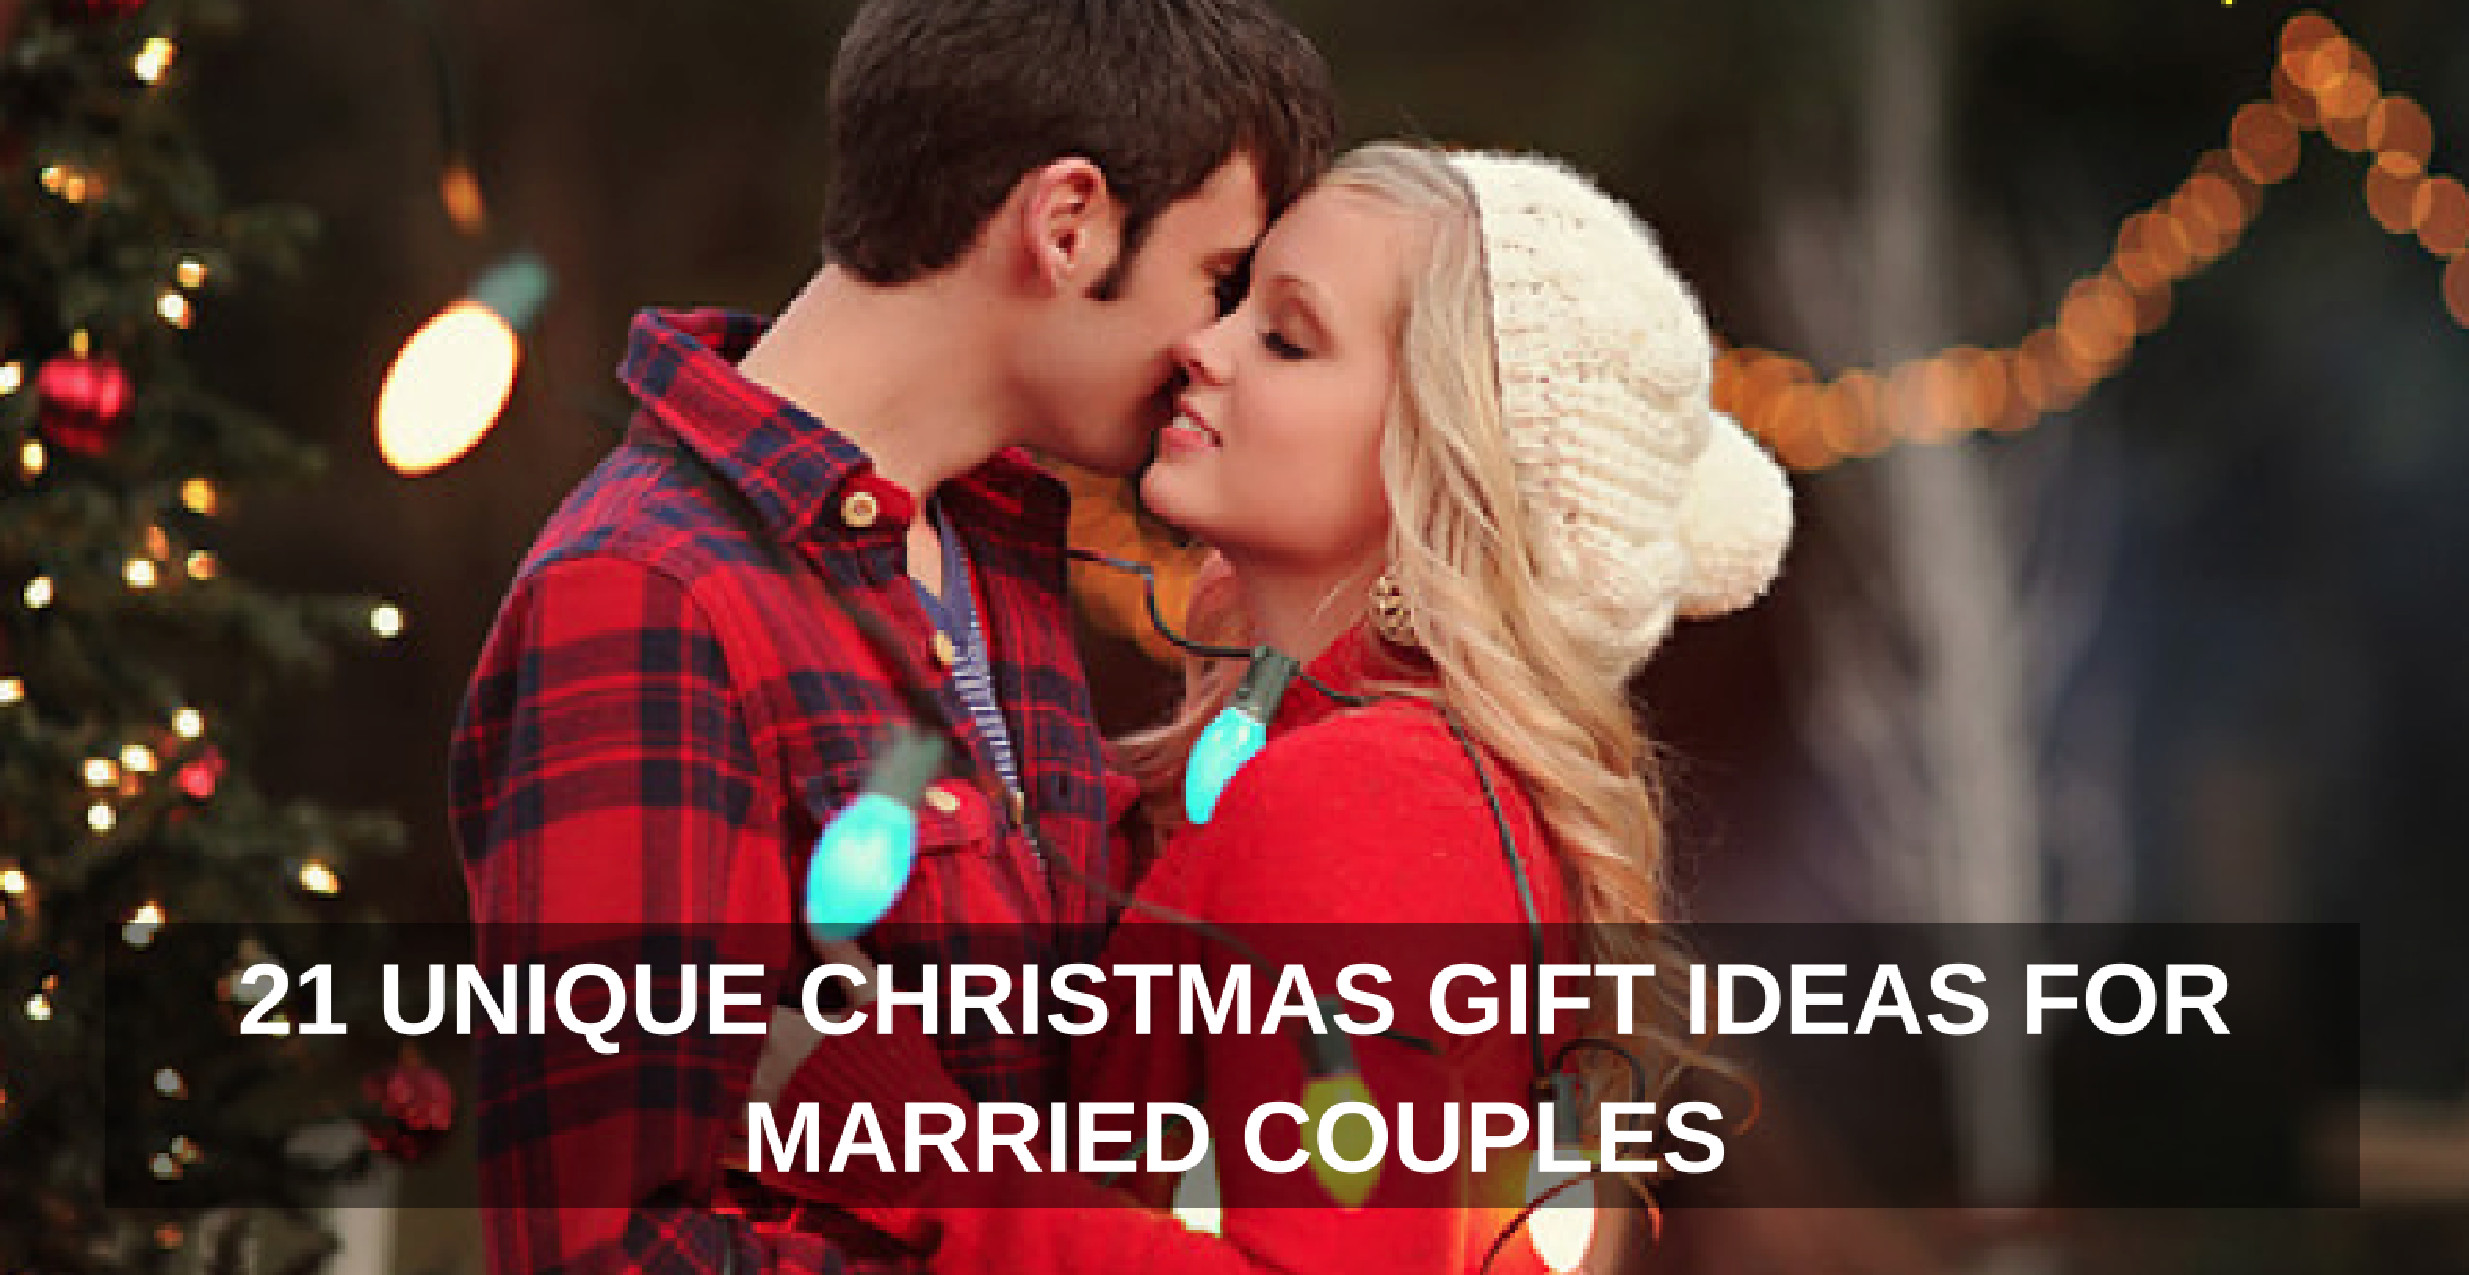 Gift Ideas For Older Couples  21 Unique Christmas Gift Ideas for Married Couples